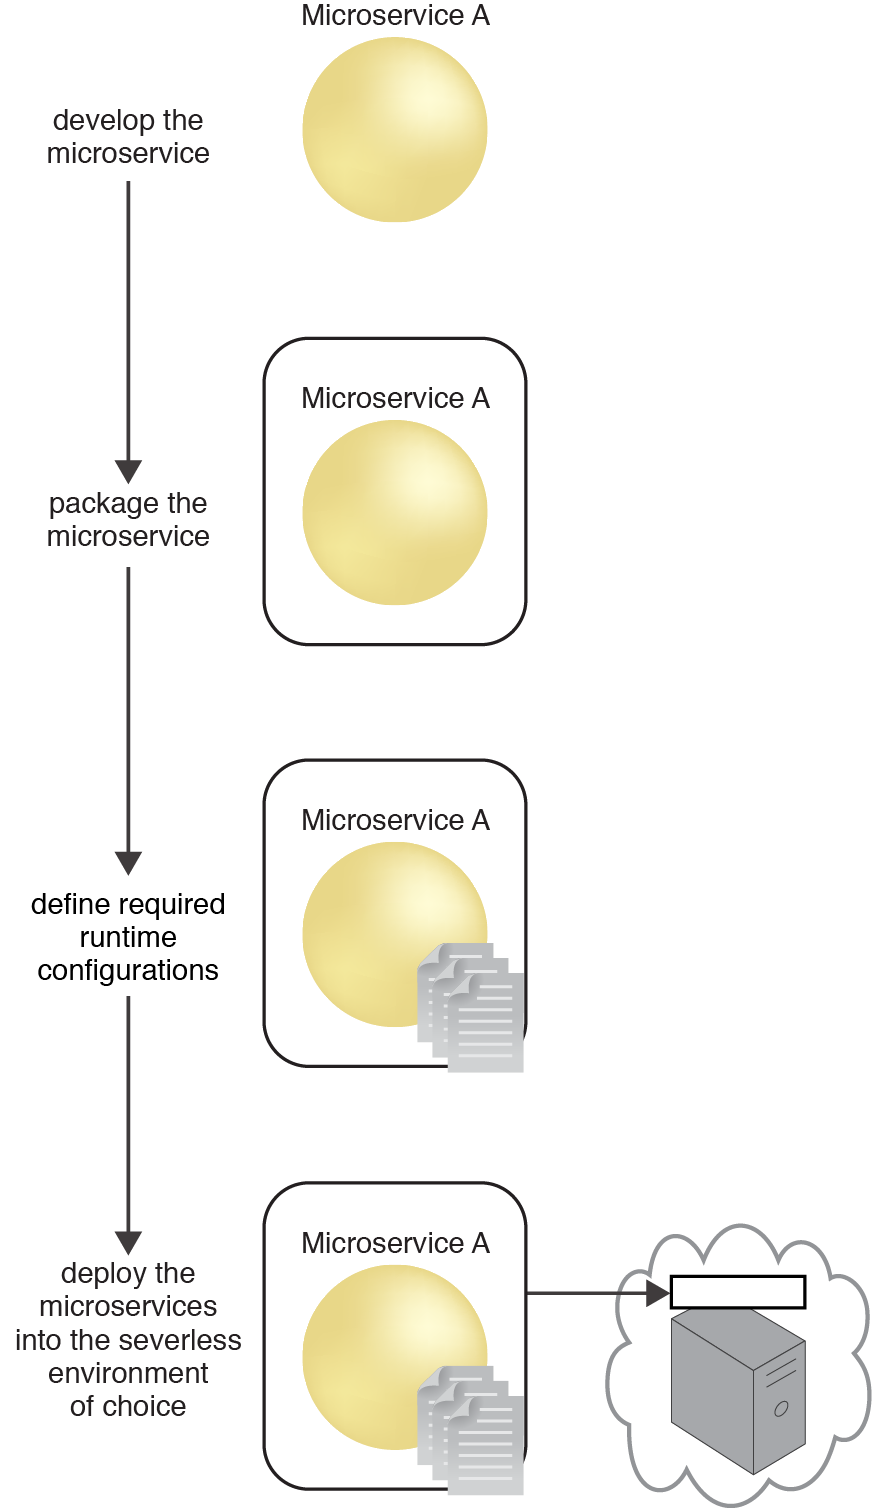 Serverless Microservice Deployment: The sequence in which a microservice transitions from development to deployment in a serverless environment.